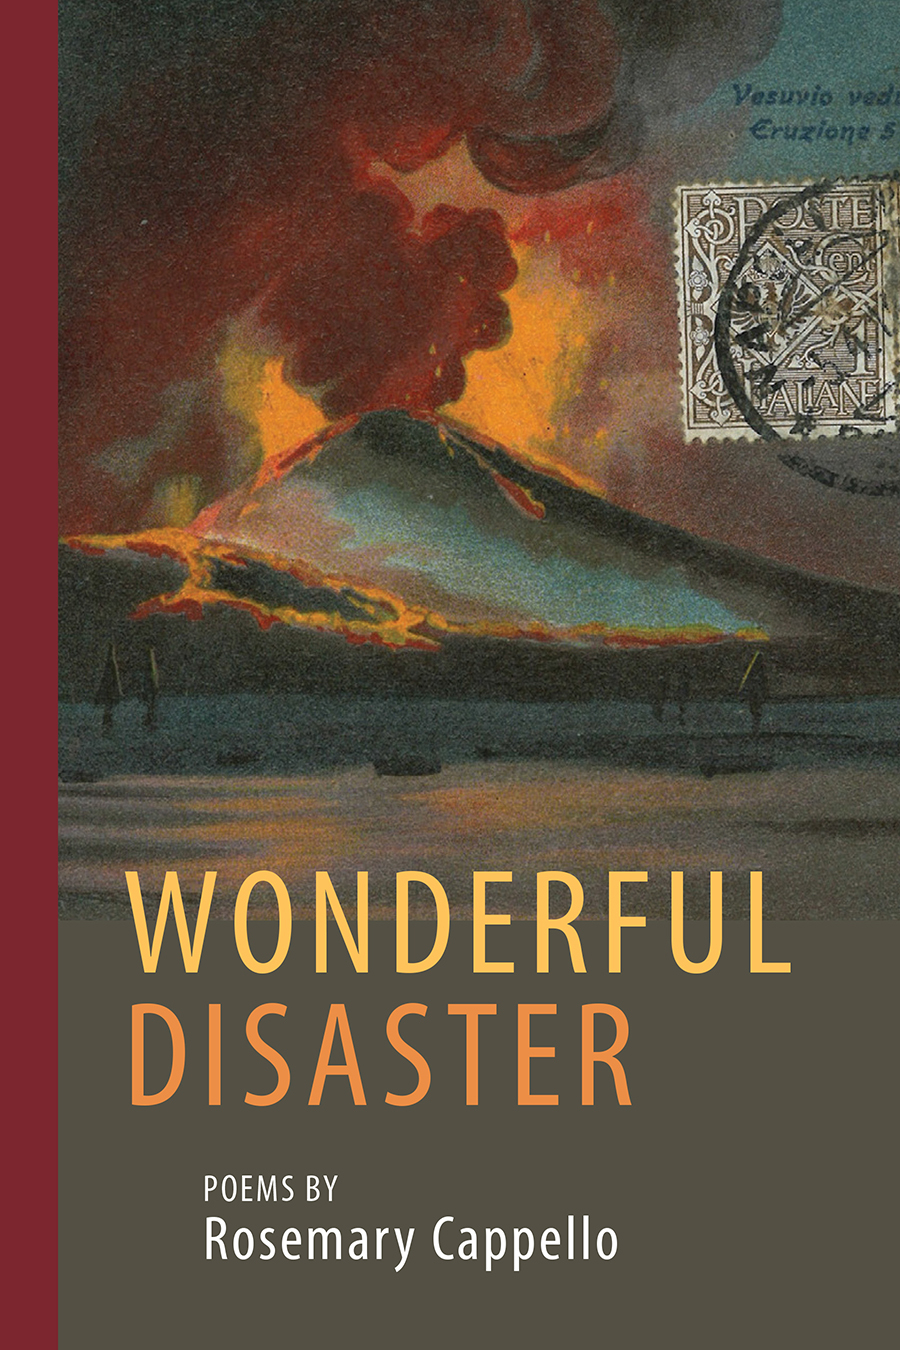 Wonderful Disaster